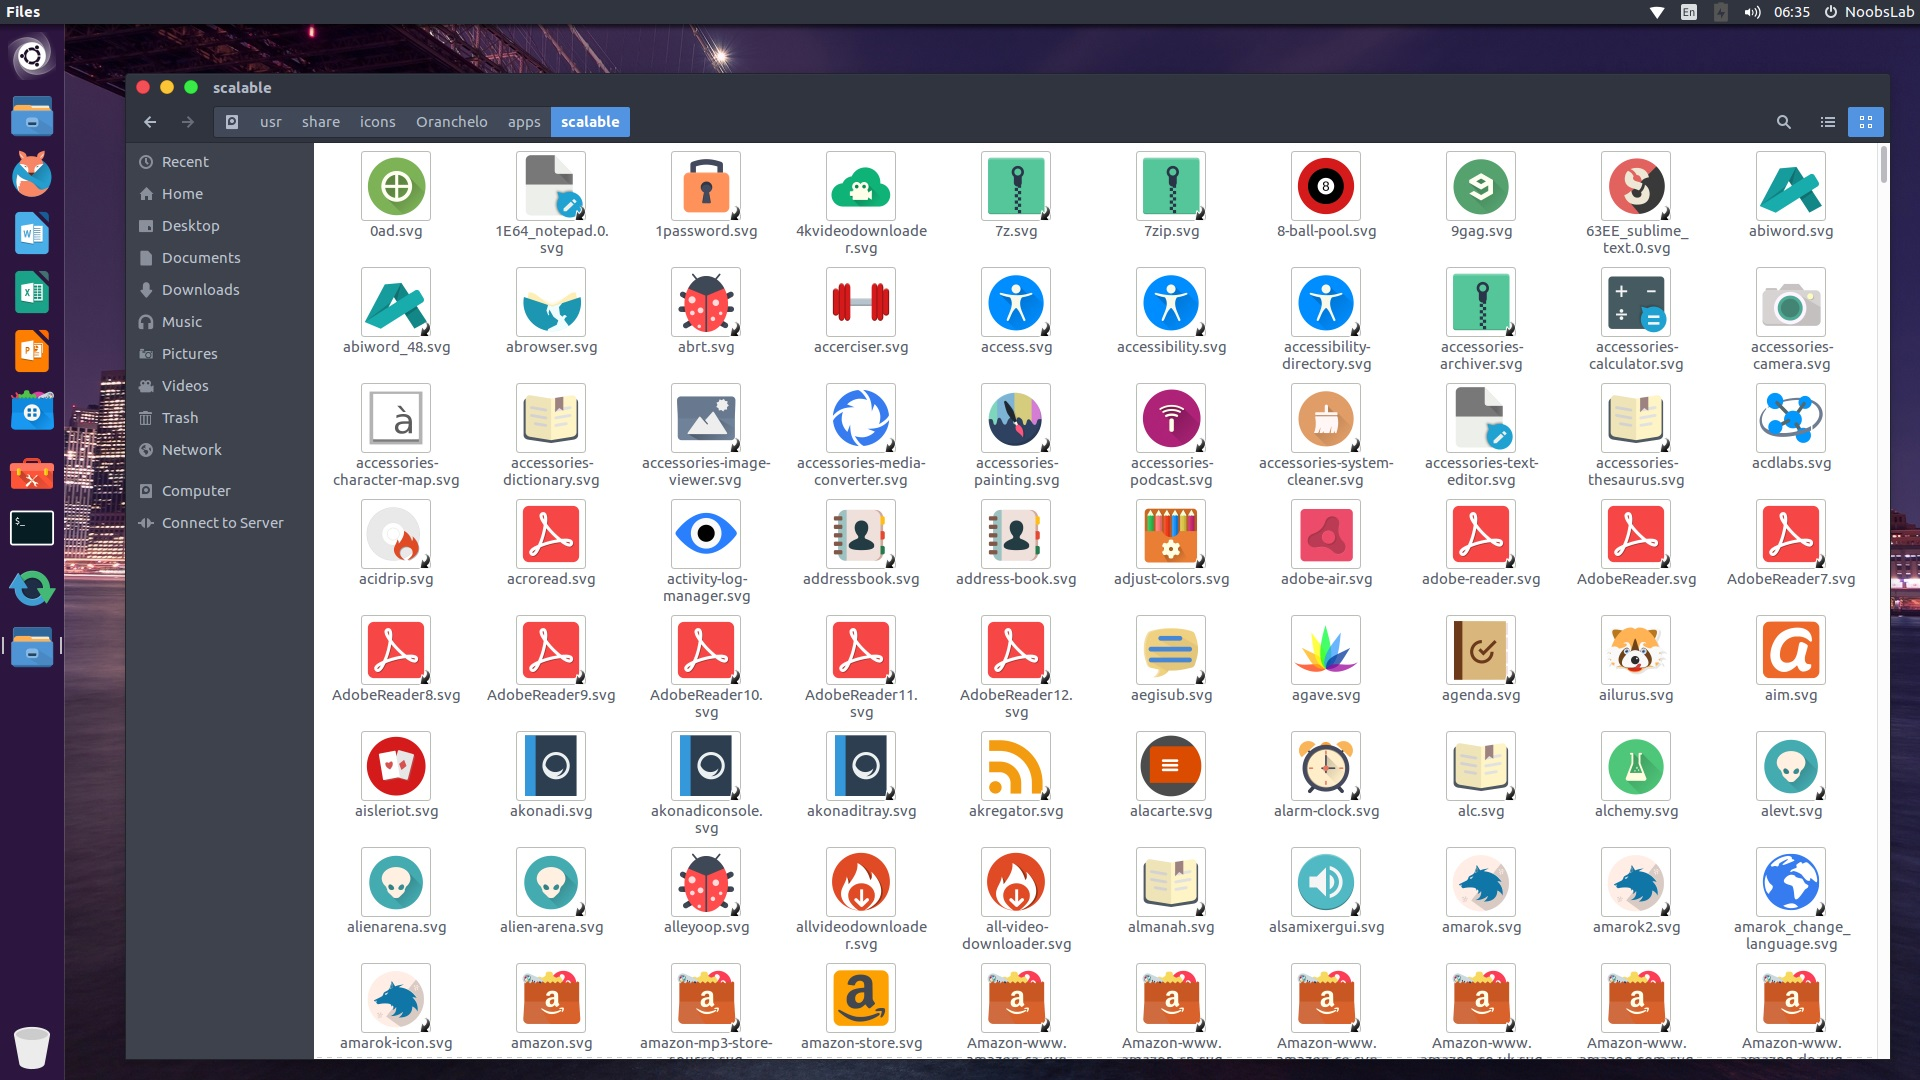 Oranchelo: A Flat Icon Theme for Ubuntu/Linux MInt - NoobsLab | Tips